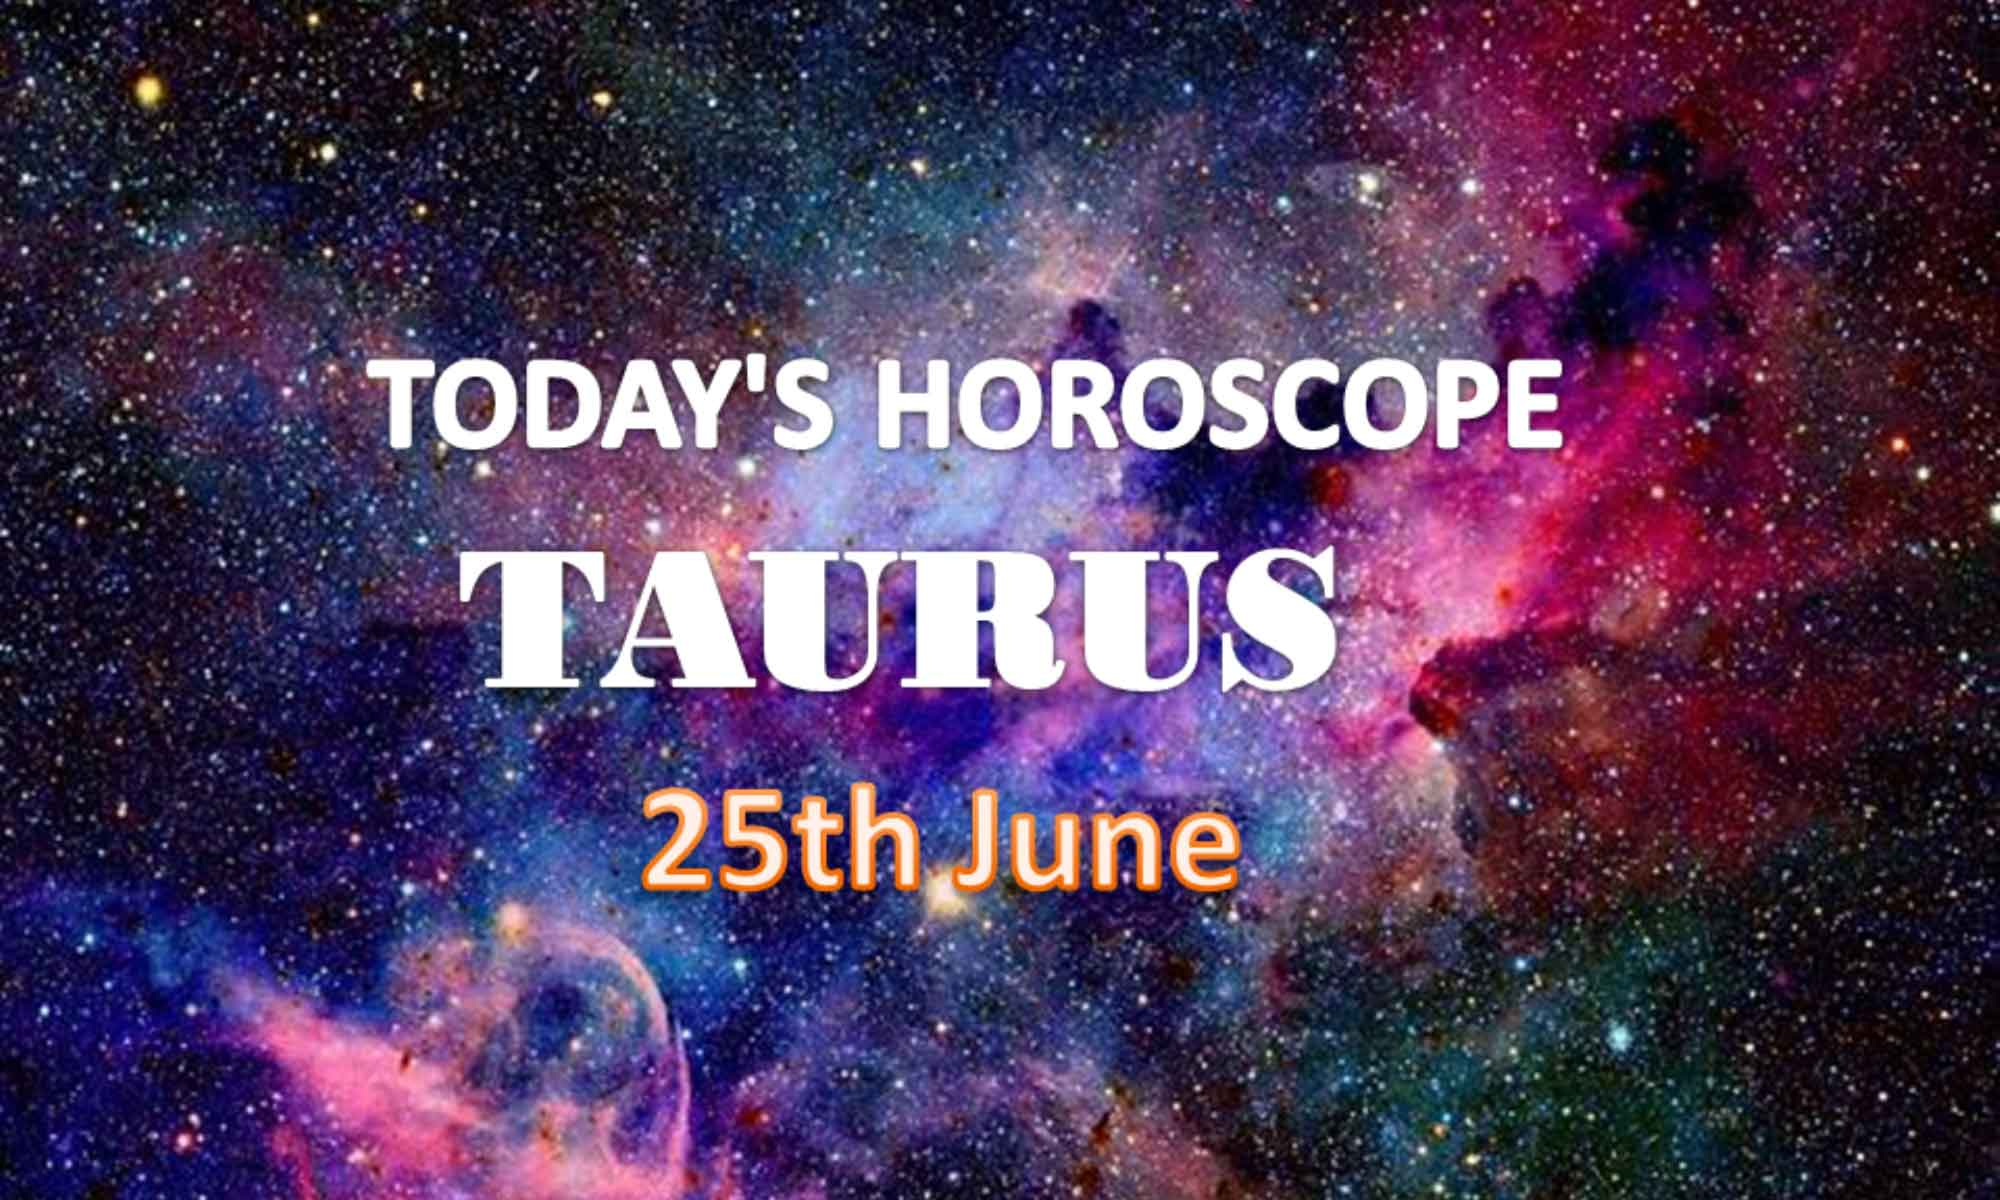 taurus daily horoscope for today friday june 25th 2021